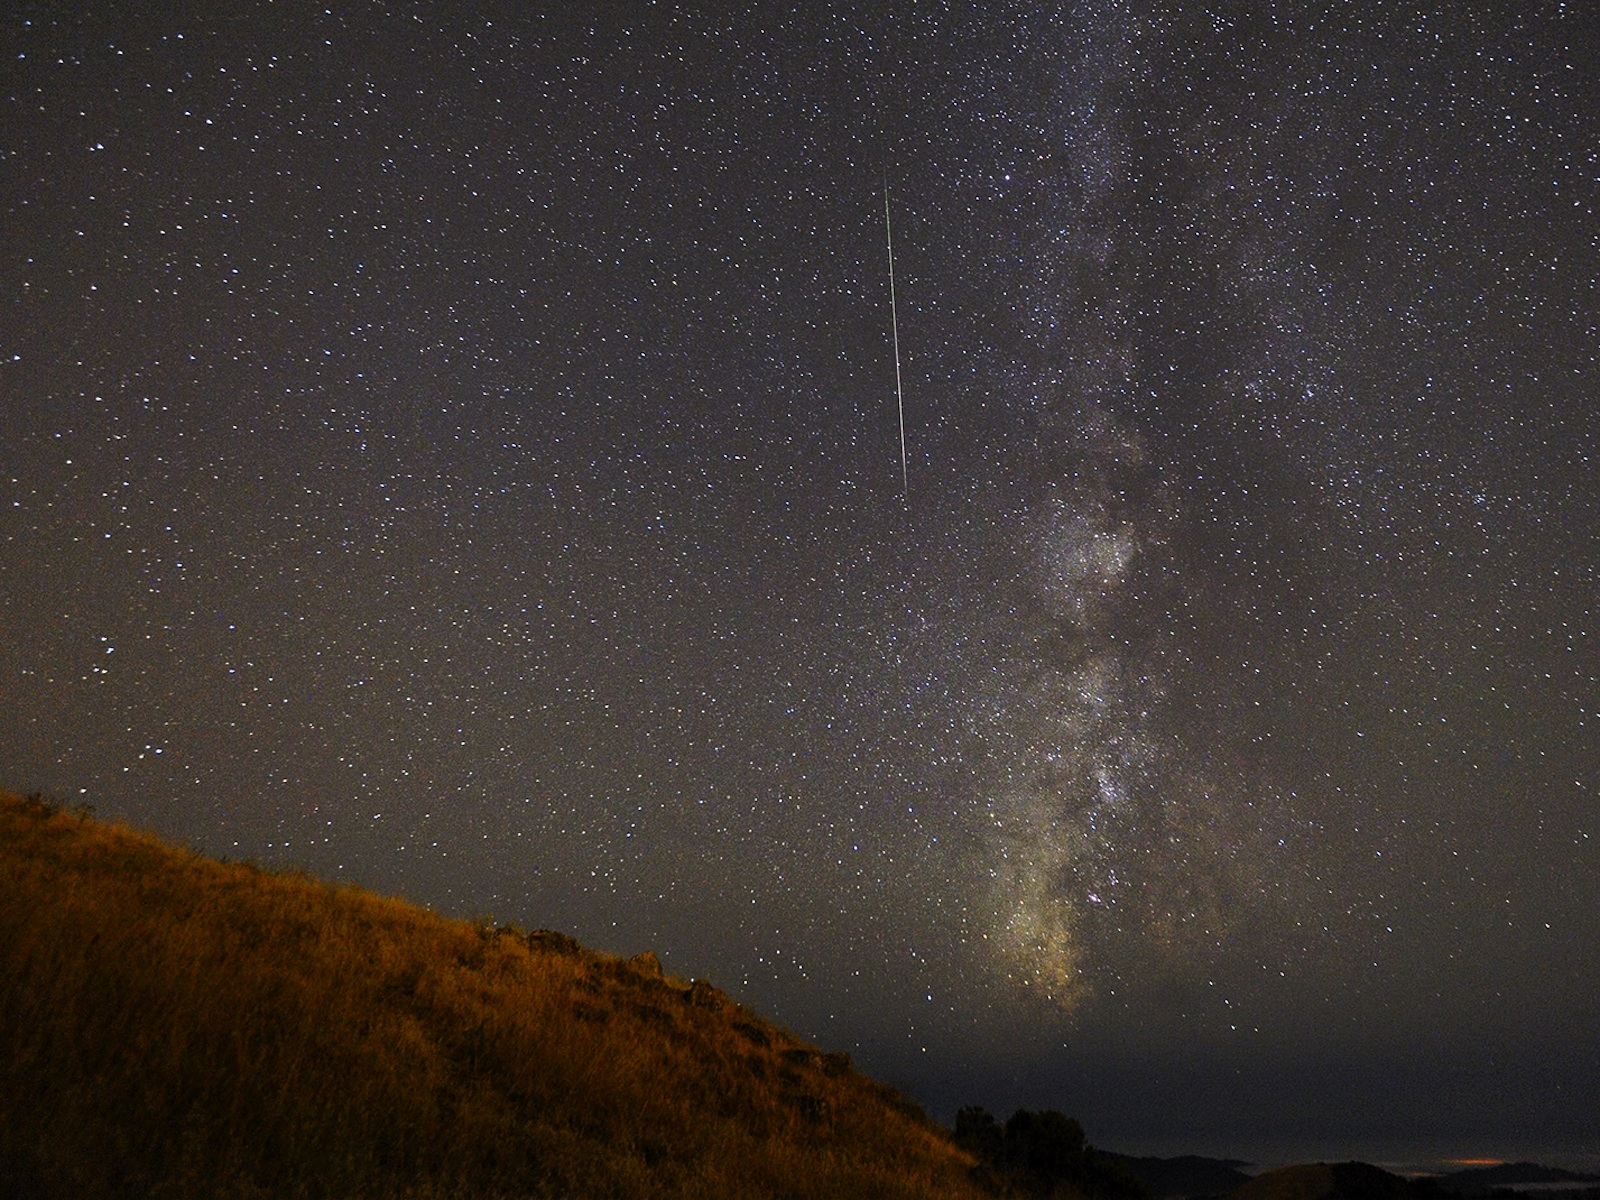 Perseids Meteor Shower from Santa Cruz Mountains